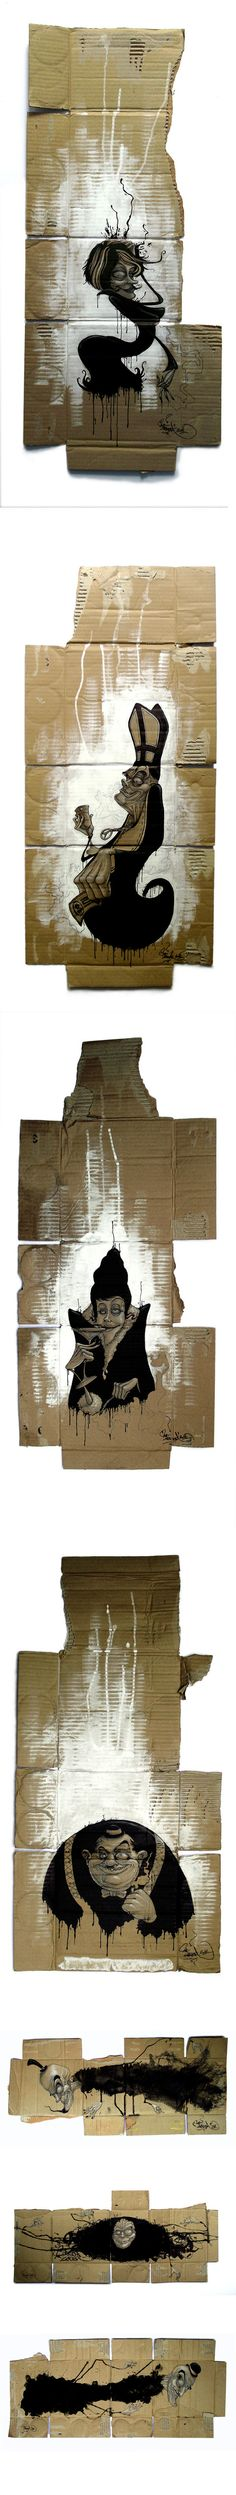 inKstinct (cardboard) by Mr. Zero - http://www.behance.net/mrzero